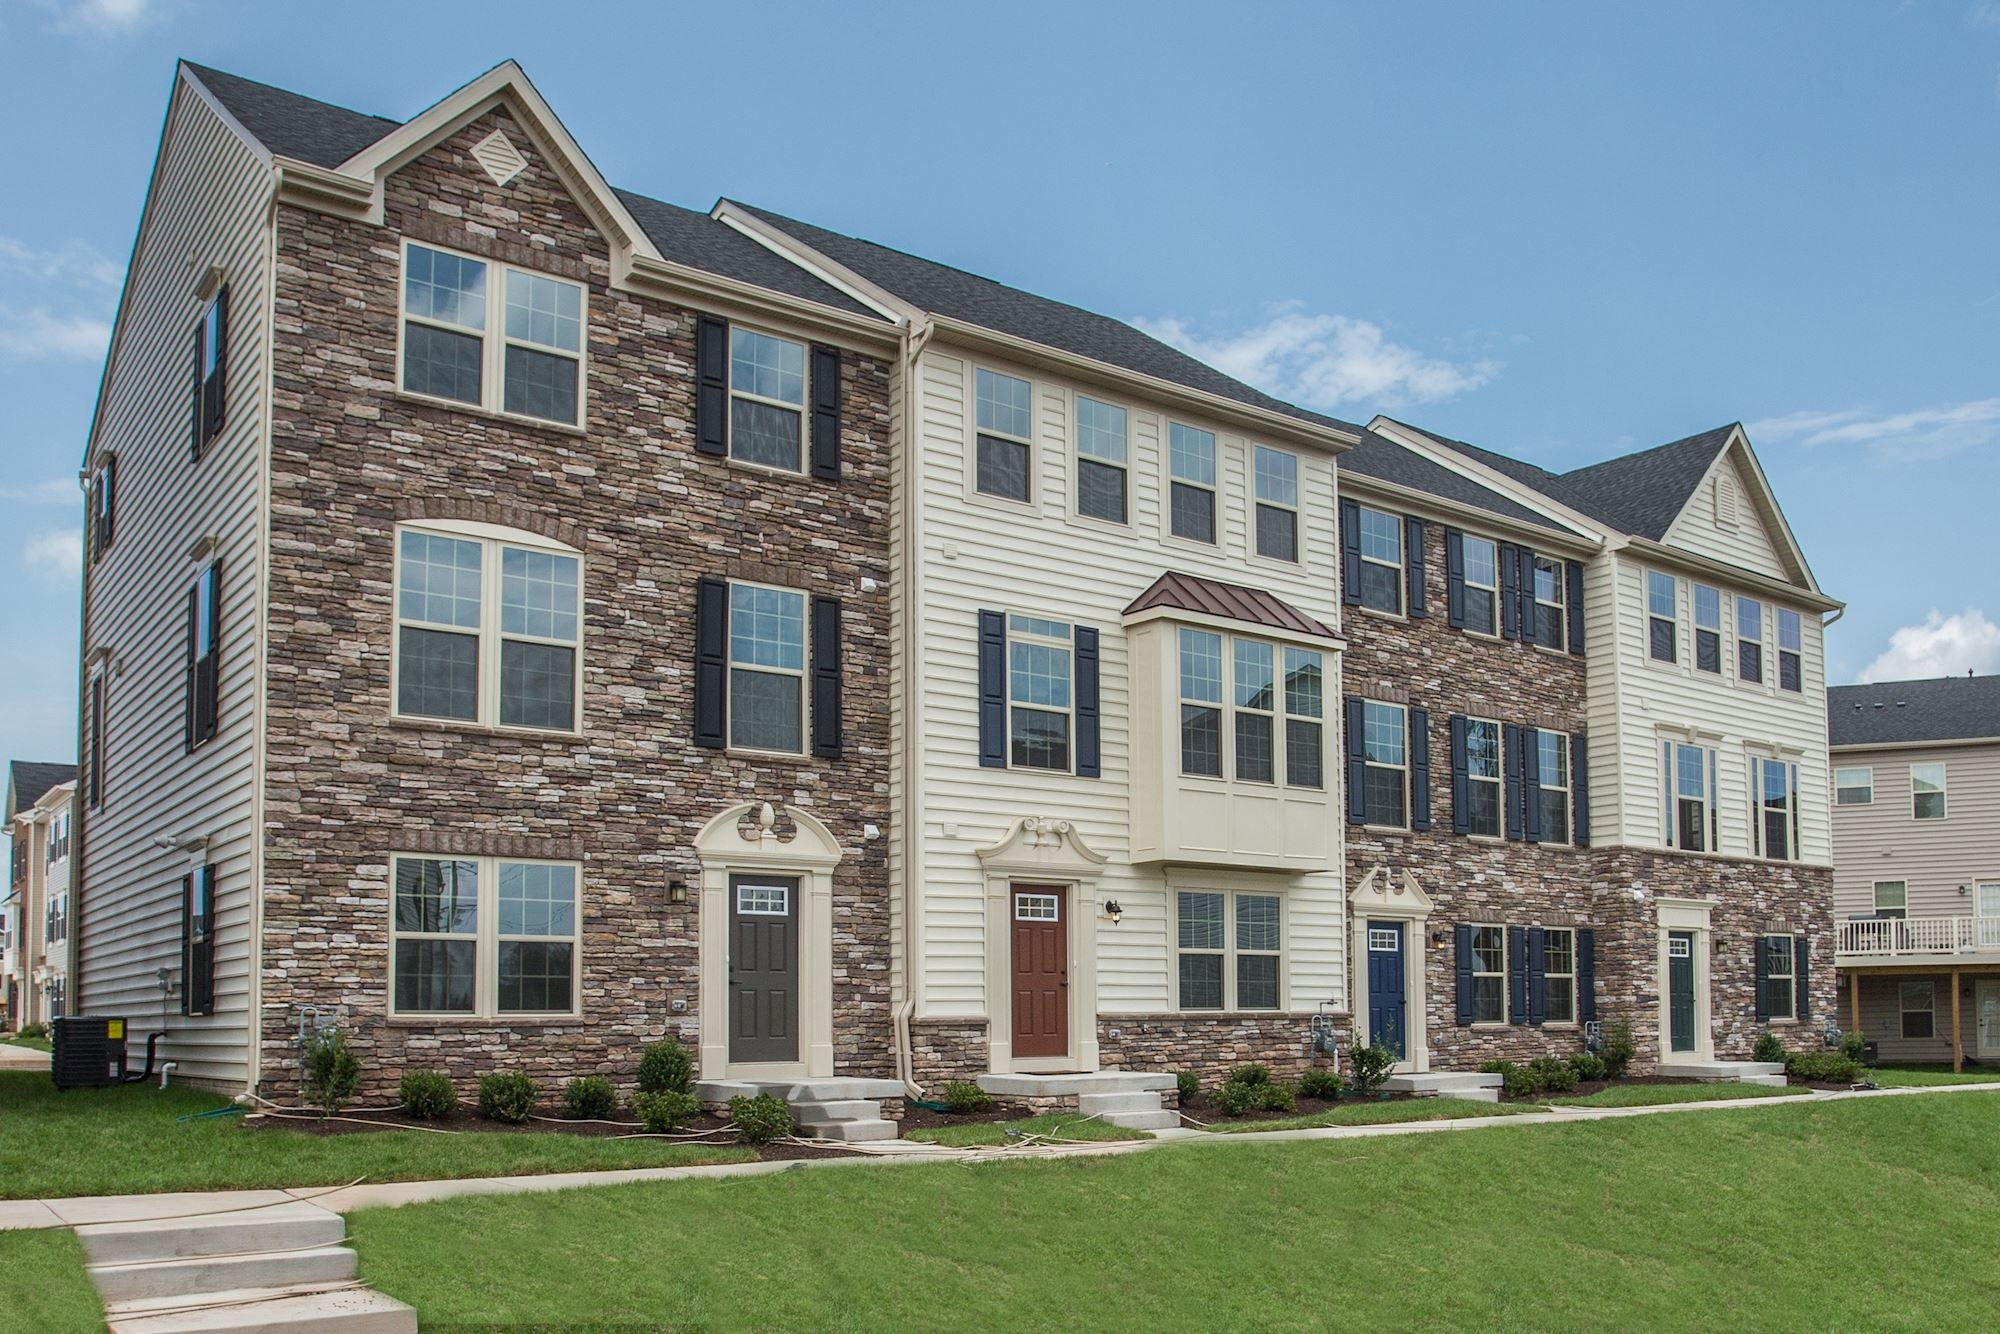 New Homes For Sale At Jefferson Place Townhomes In Frederick Md